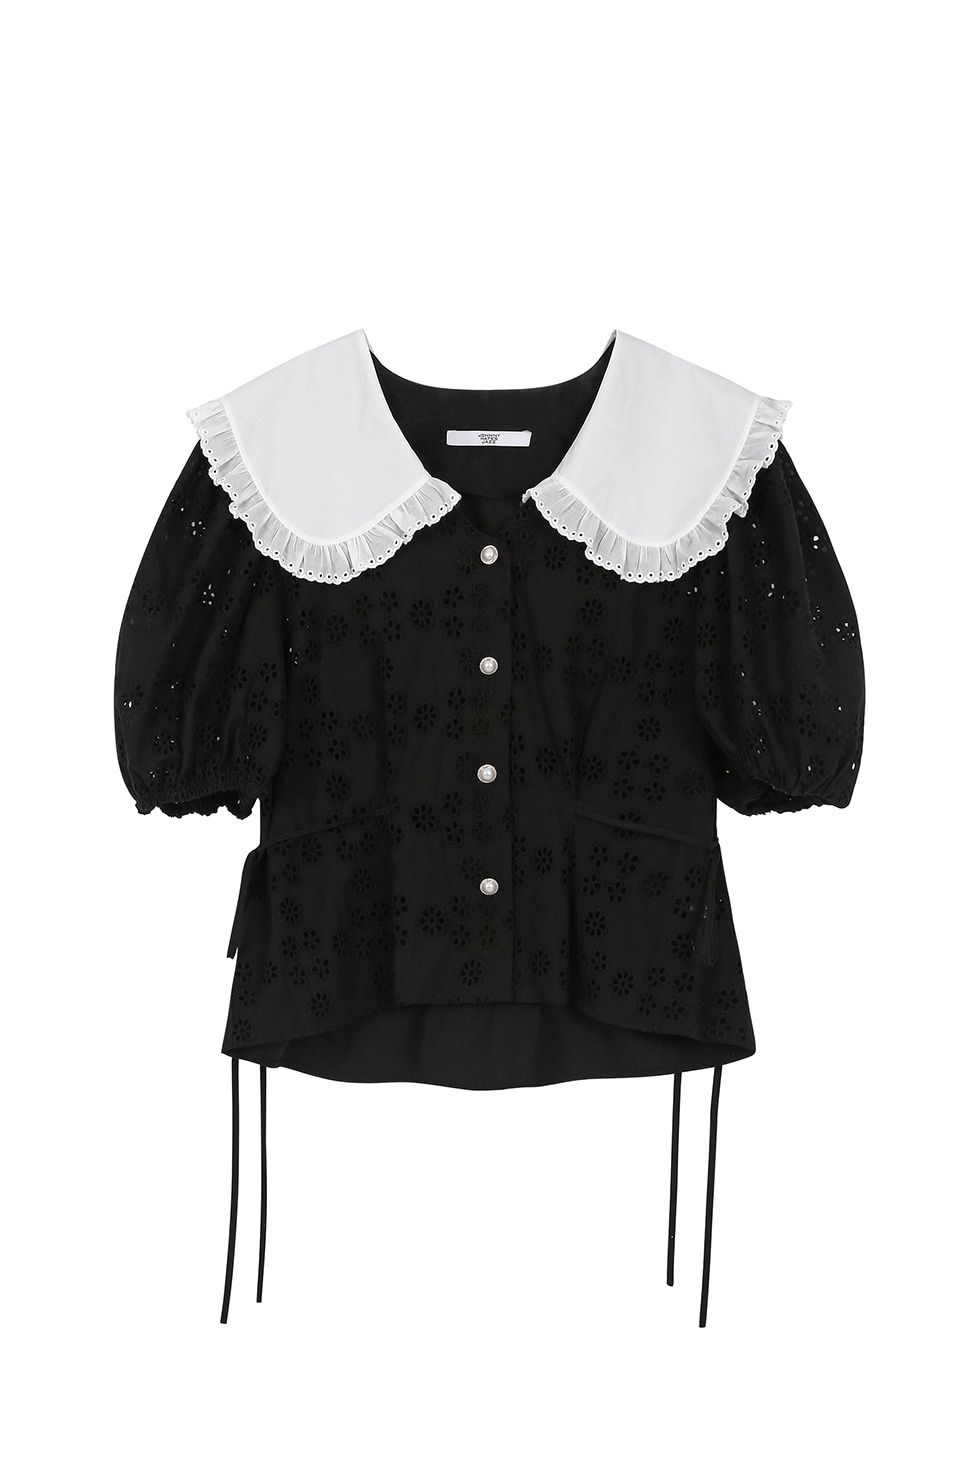 BIG PUFF BROIDERY BLOUSE - BLACK